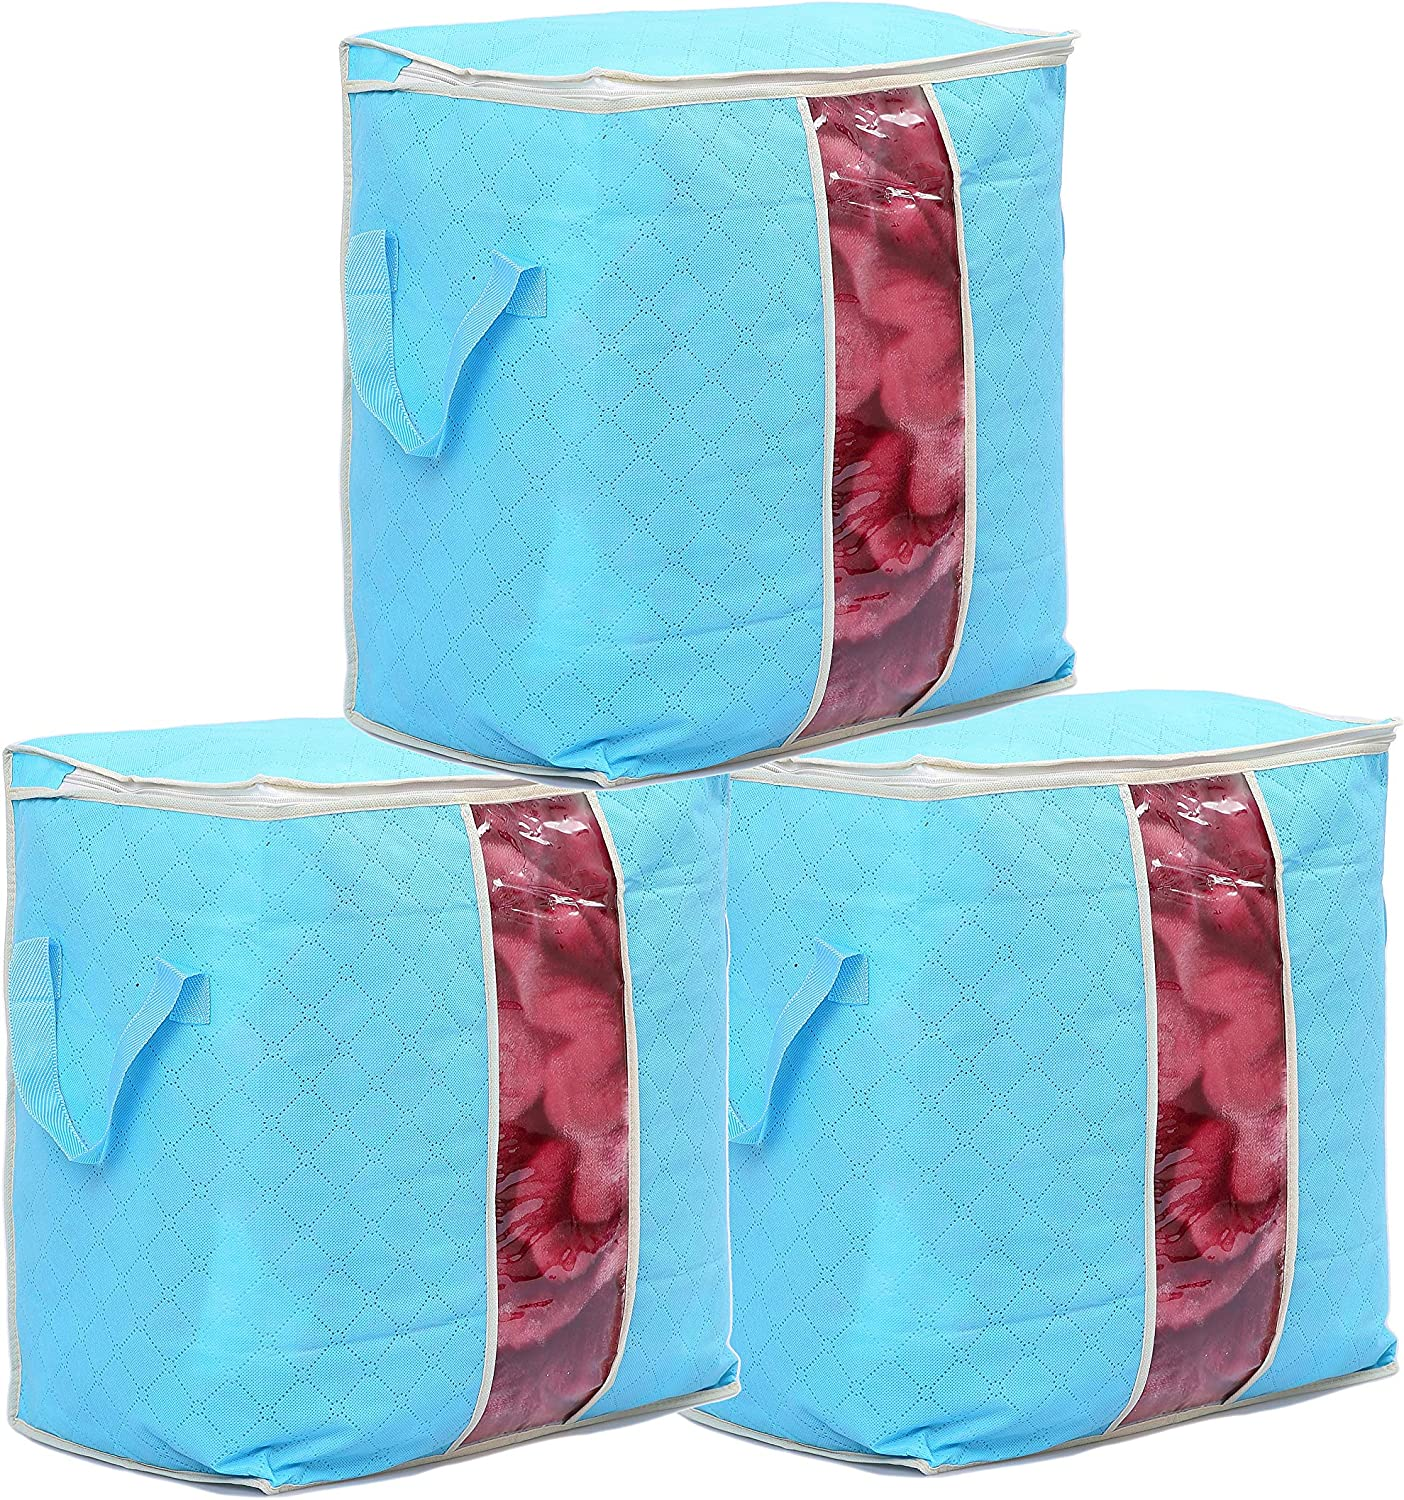 Duvets Moving Organiser Blankets Quilt 3 Piece Set 45 * 27 * 45 Blue Bedding Runsabay Nonwoven Underbed Storage Bags Large Clear Window /& Portable Handles Clothes Storage for Clothes